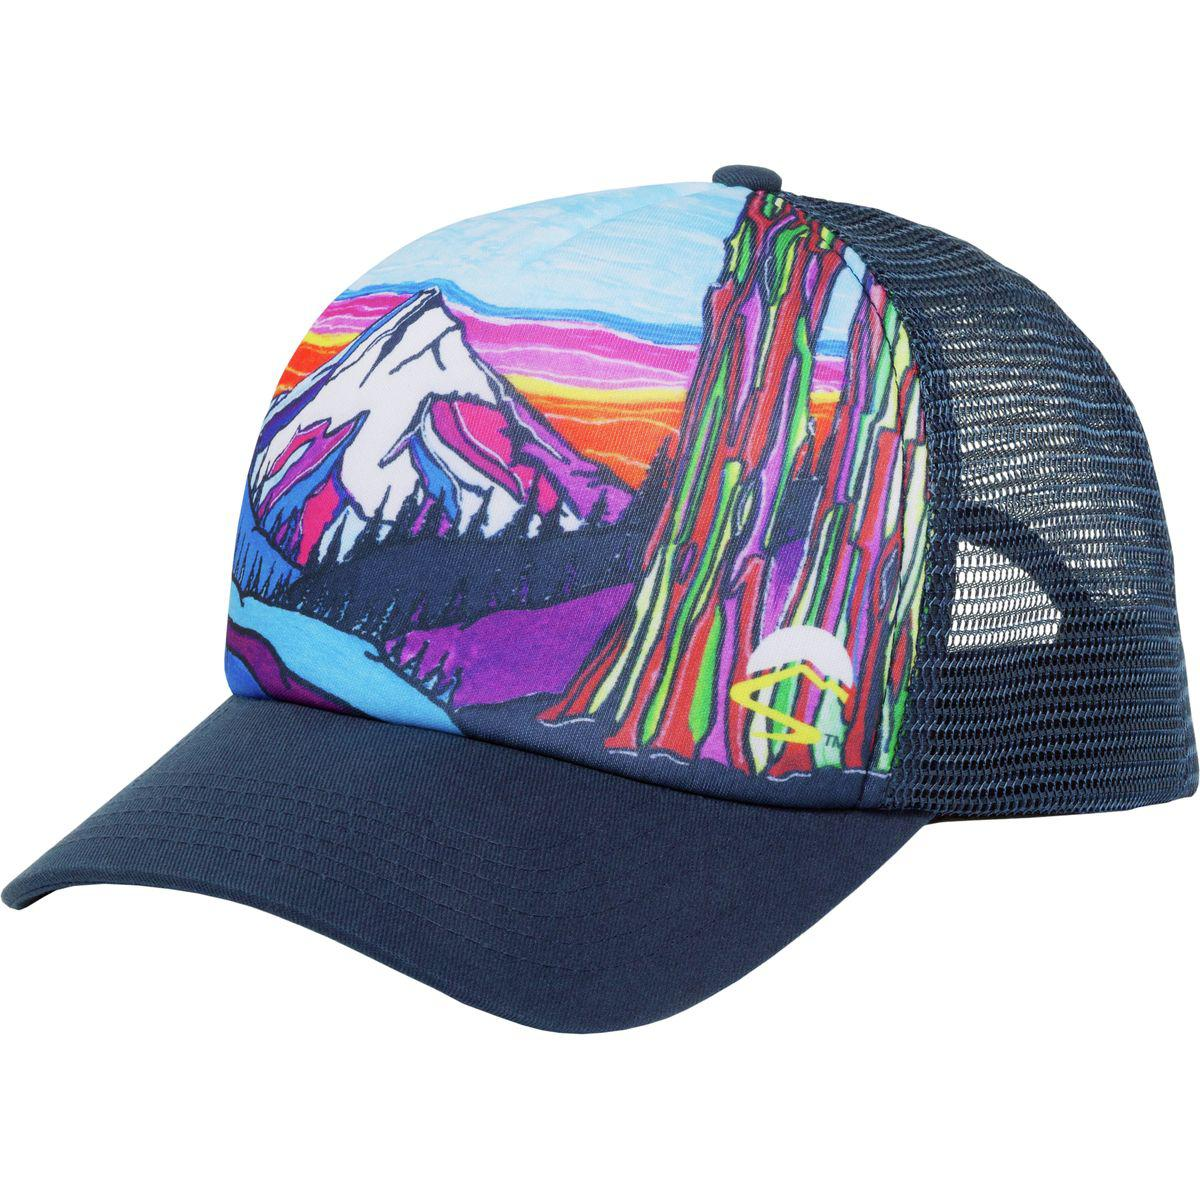 386226cb434 Lyst - Sunday Afternoons Artist Series Trucker Hat in Blue for Men